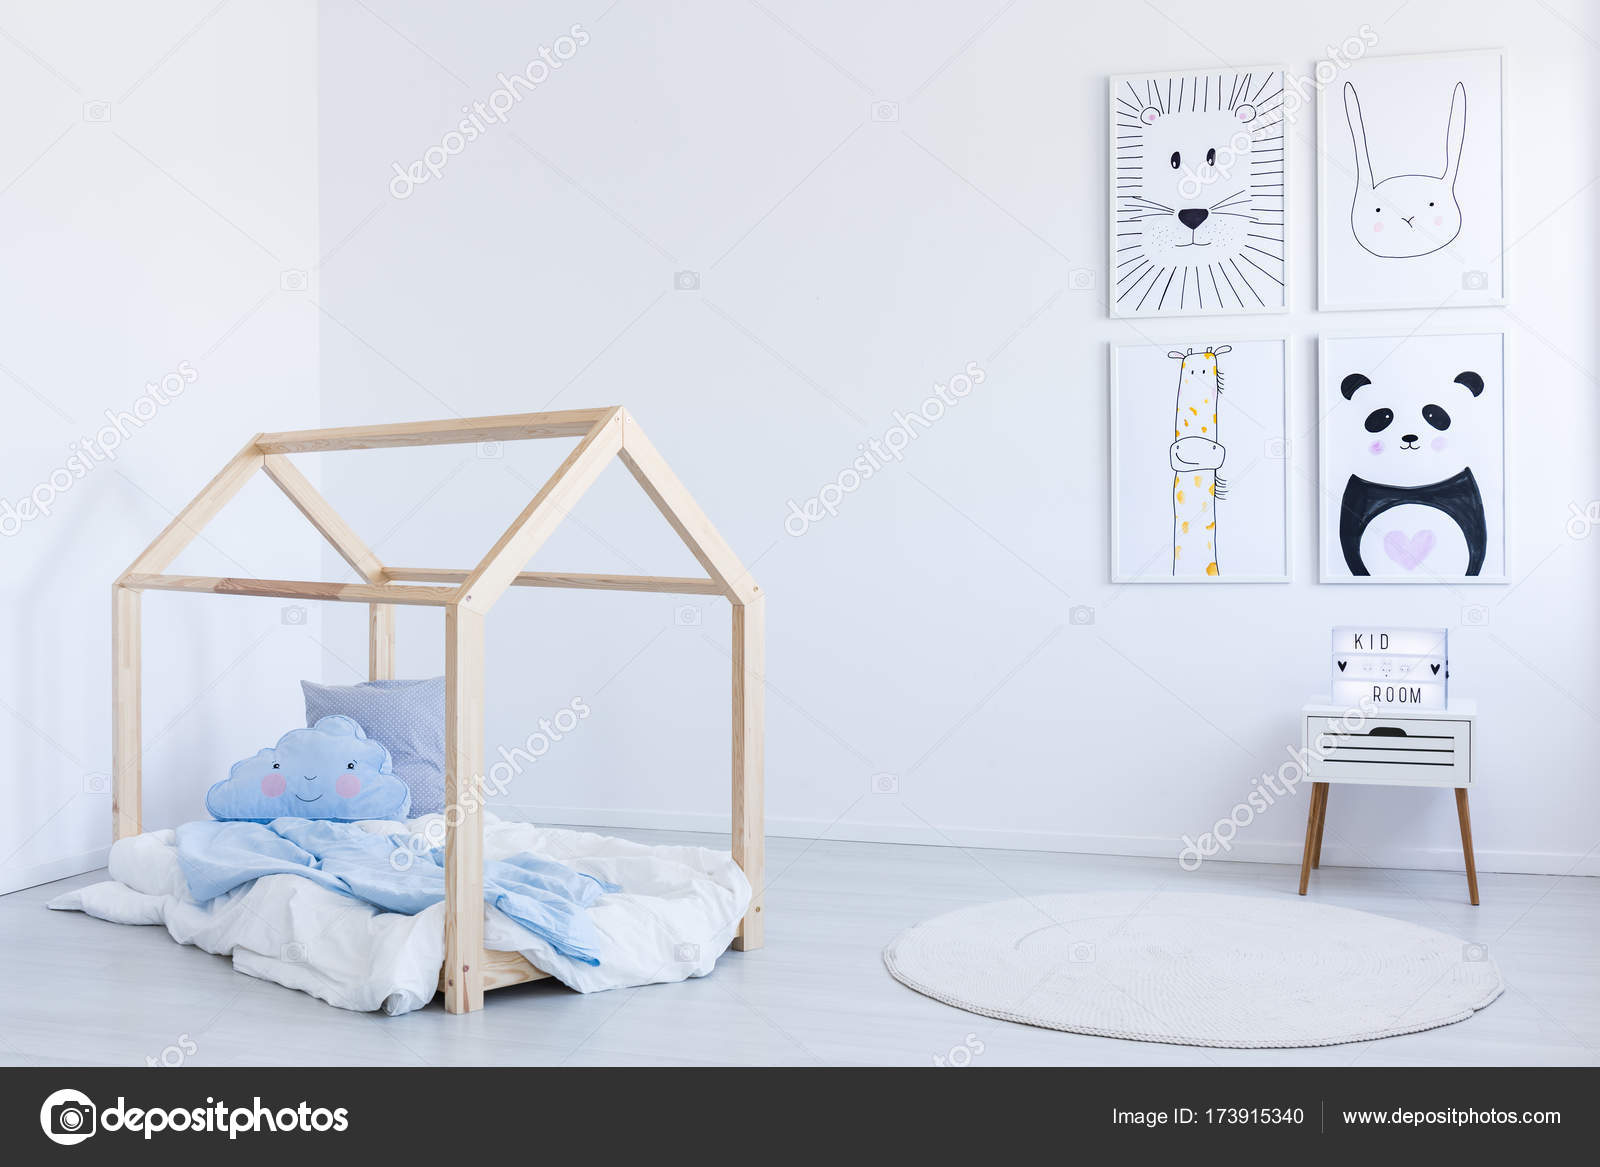 Diy bed in boy s kamer u stockfoto photographee eu